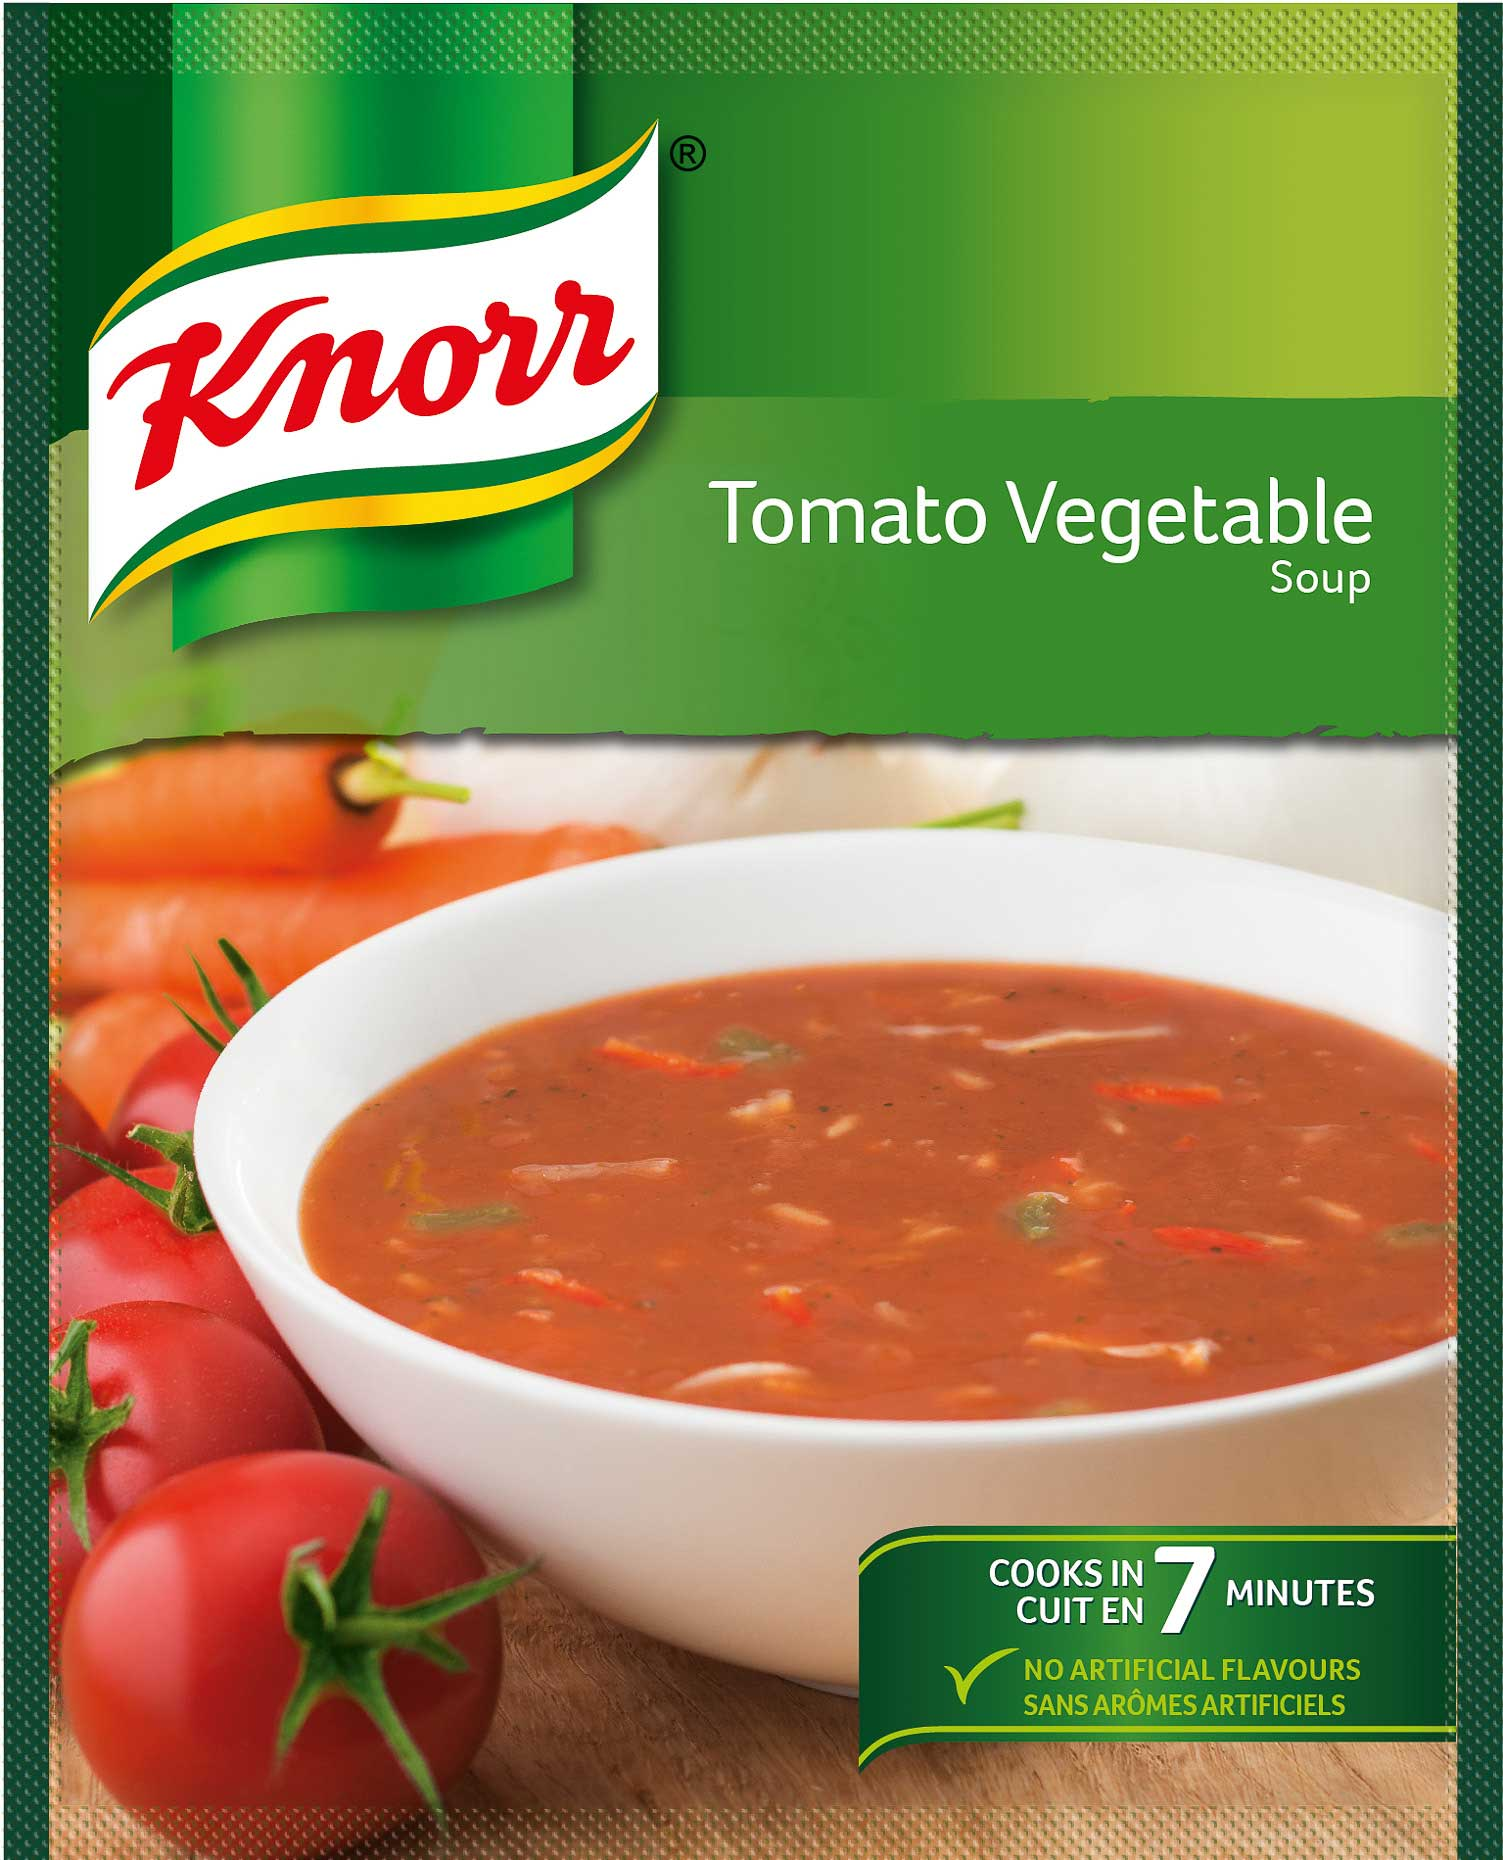 INC231_04_NR_Knorr CAN_Soup_Tomato Vegetable_OL